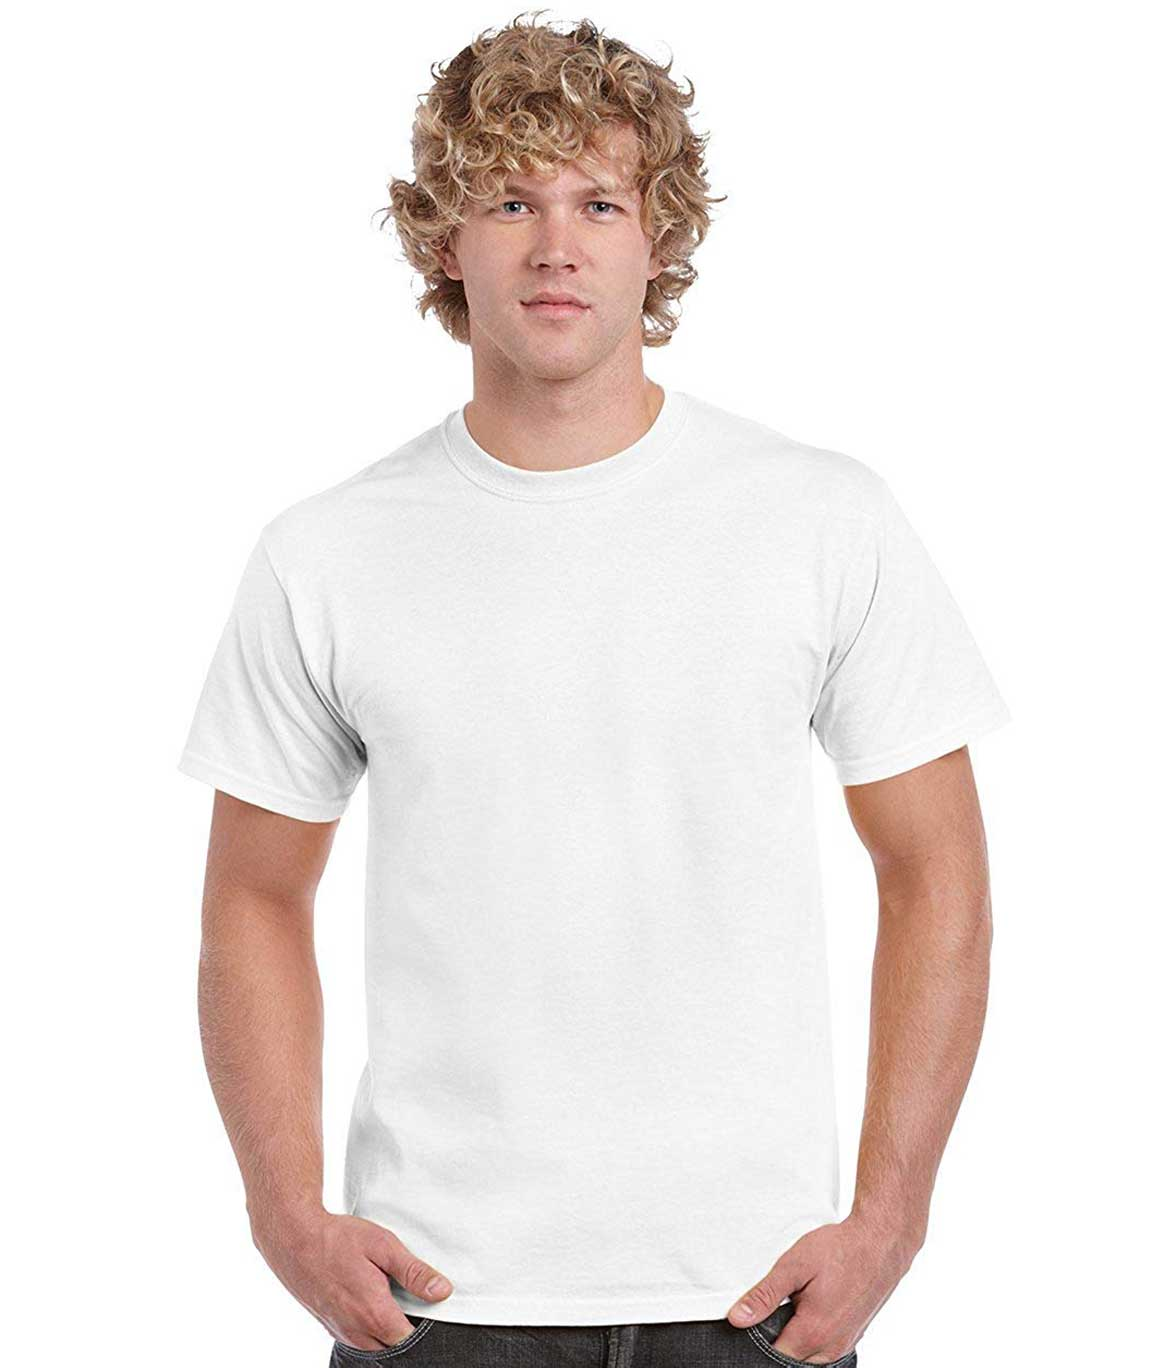 Vestiario Independence Day Special White T-Shirts